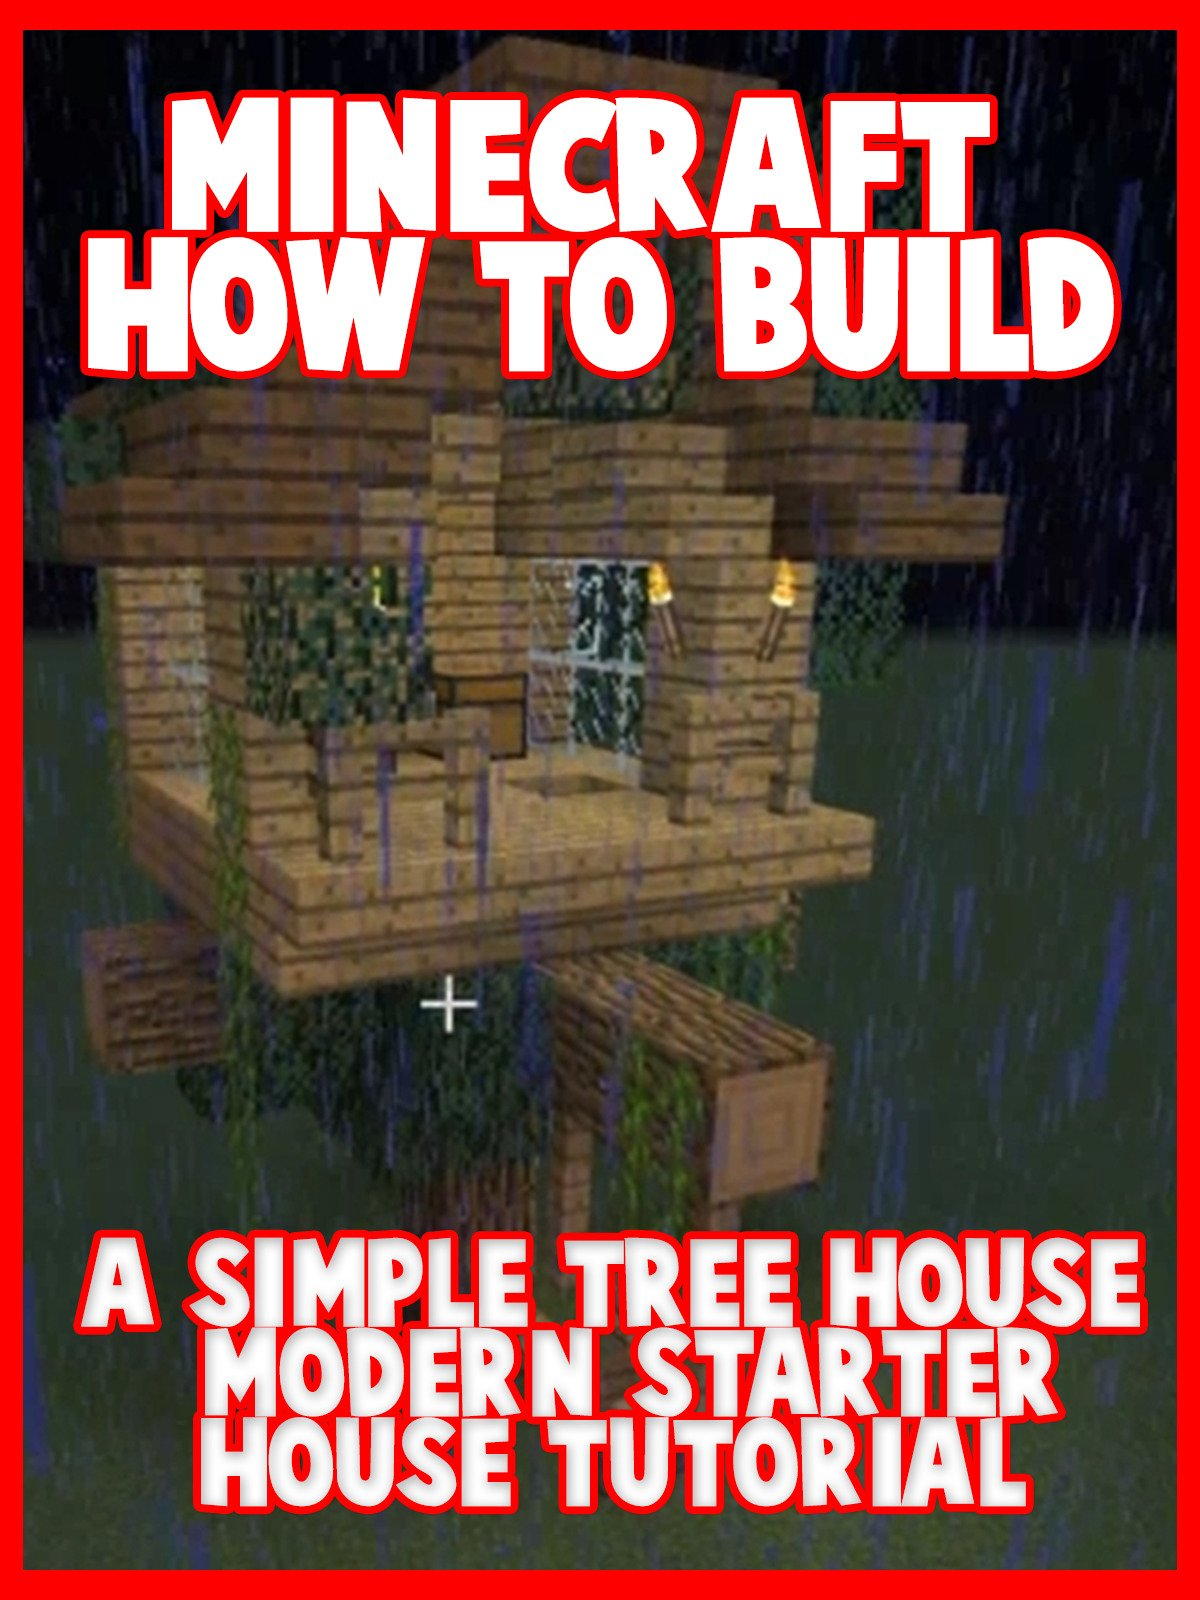 Clip: Minecraft: How to Build a Simple Tree House